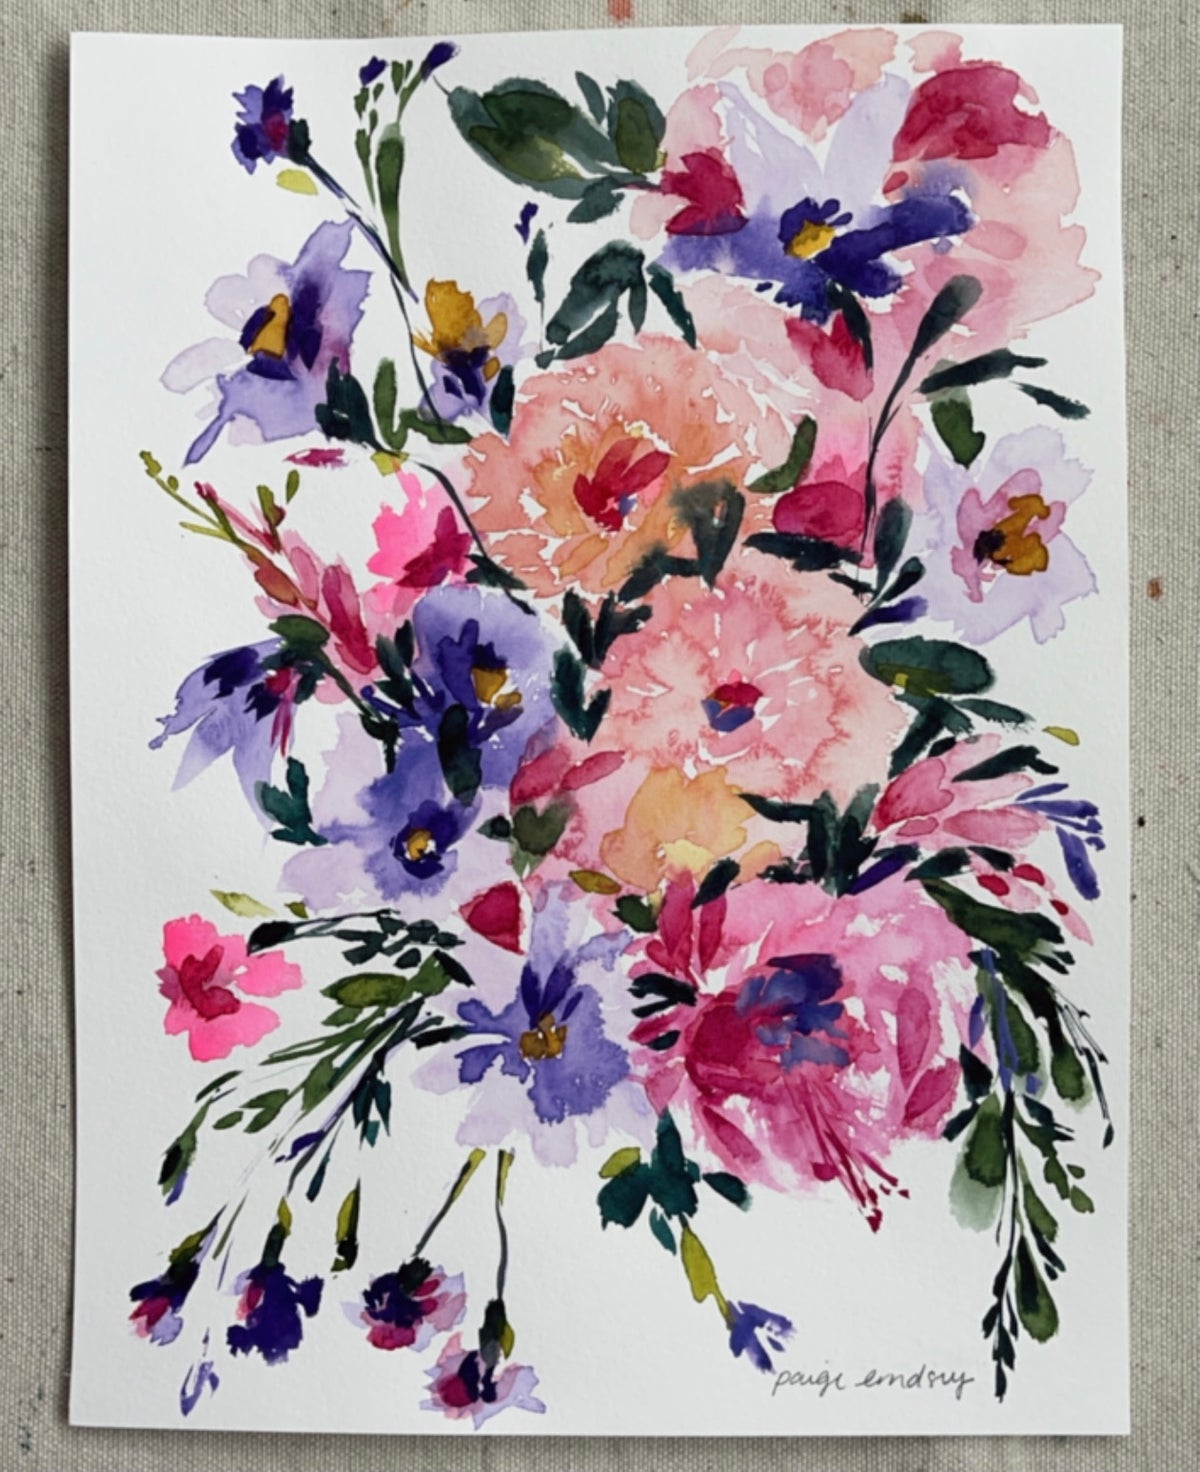 Image of Colorful Wildflower Bouquet - Original Watercolor Painting